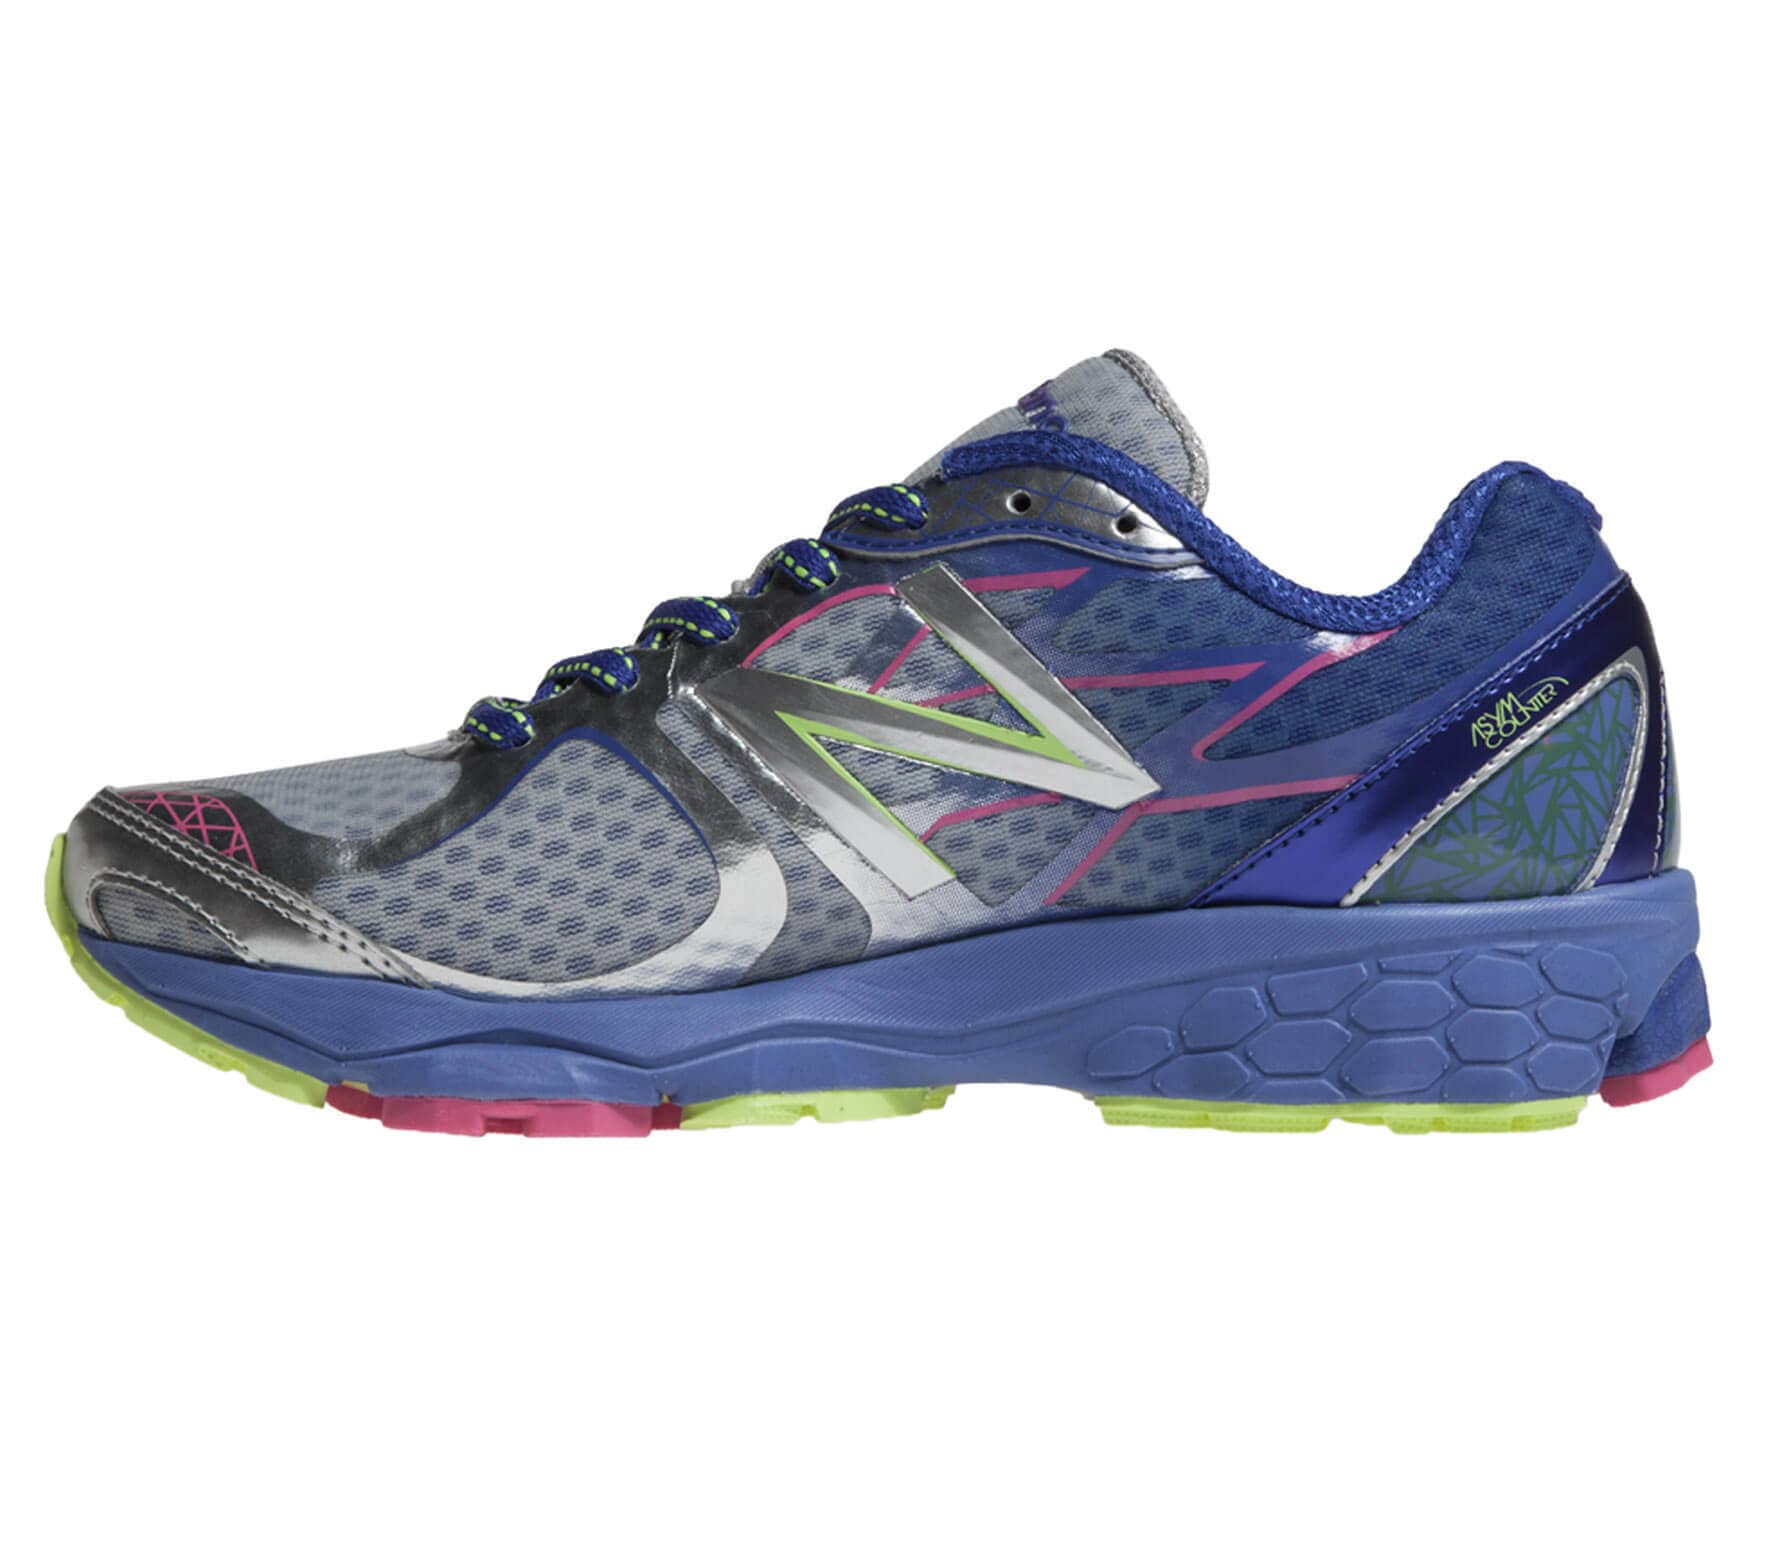 New Balance  Series Is It A Stability Shoe